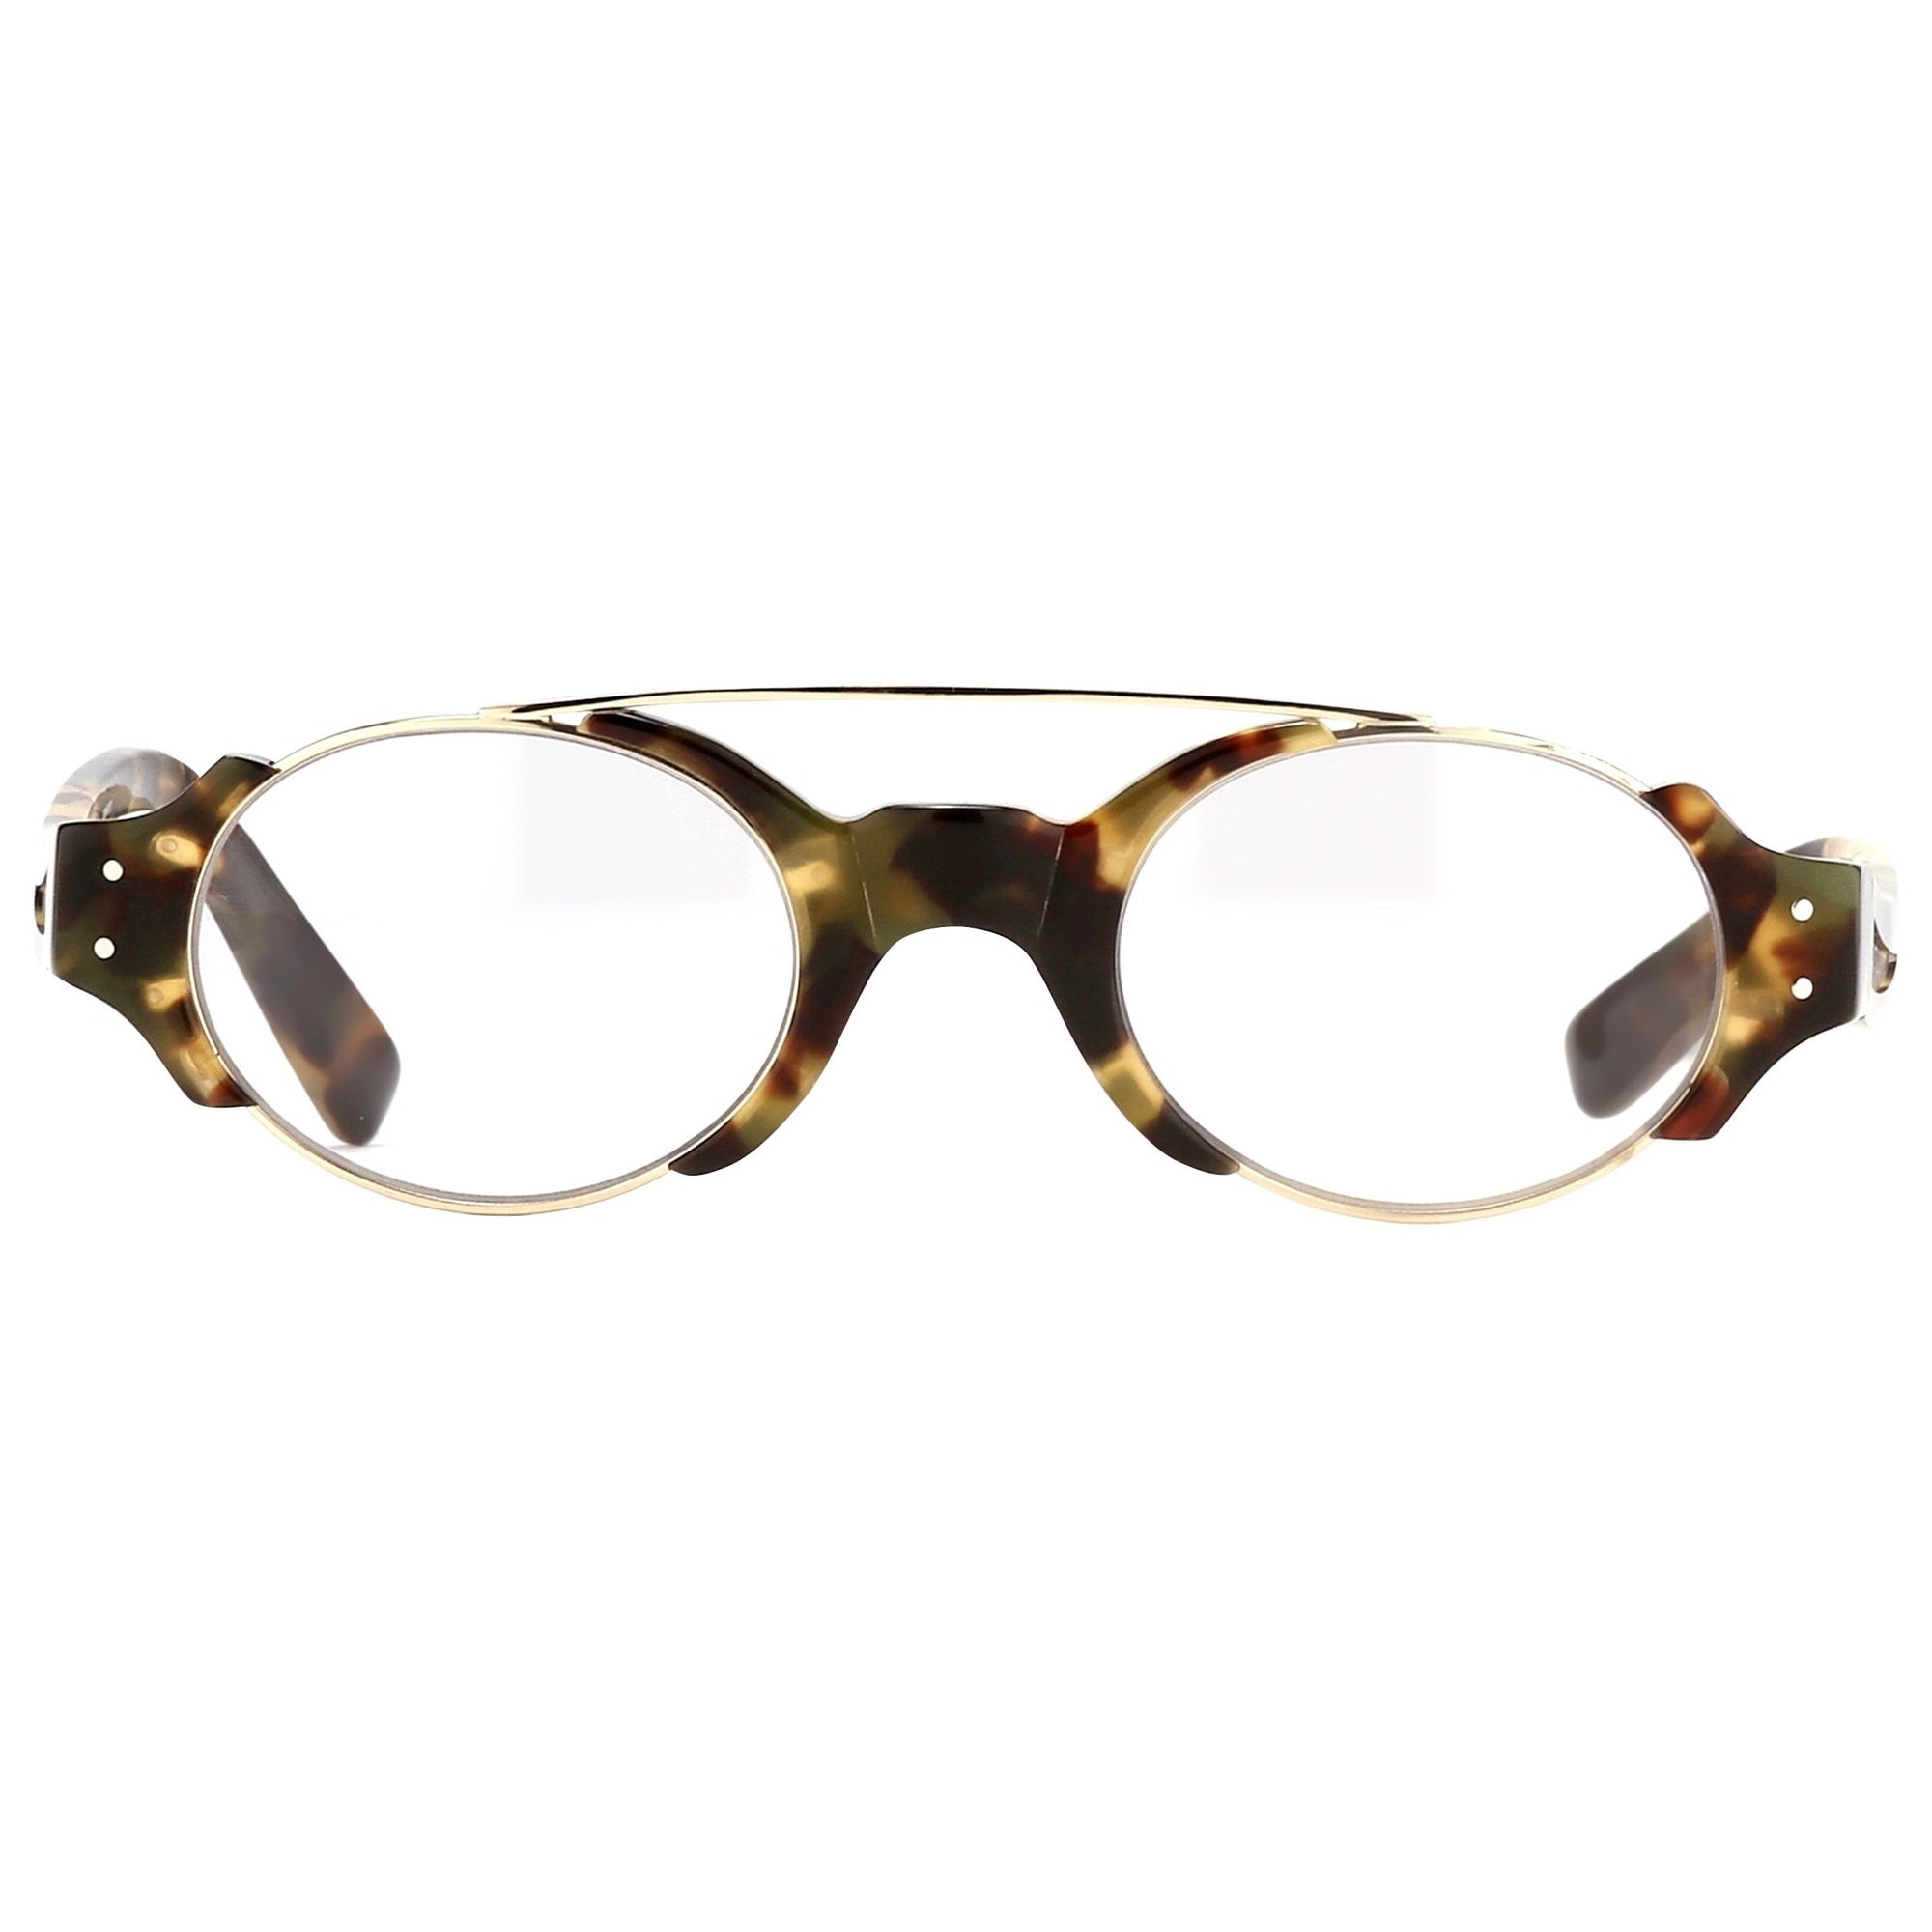 Erdem Women Sunglasses Tortoise Shell Light Gold with Grey Lenses EDM8C1SUN - Watches & Crystals